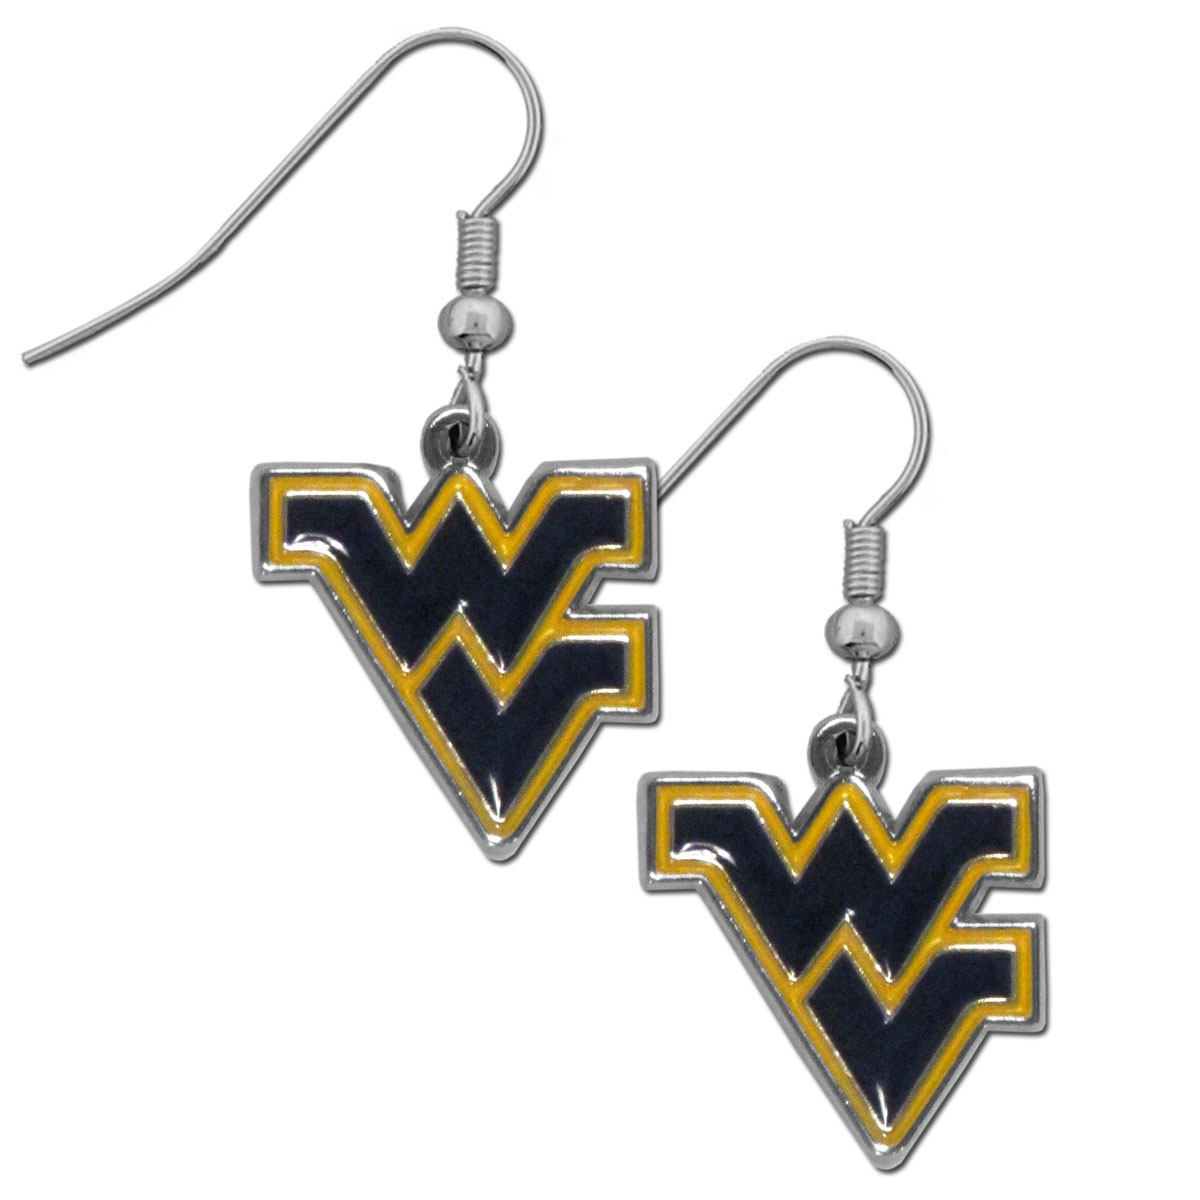 W. Virginia Mountaineers Chrome Dangle Earrings - Officially licensed collegiate W. Virginia Mountaineers dangle earrings have fully cast W. Virginia Mountaineers charms with exceptional detail and a hand enameled finish. The earrings have a high polish nickel free chrome finish and hypoallergenic fishhook posts.